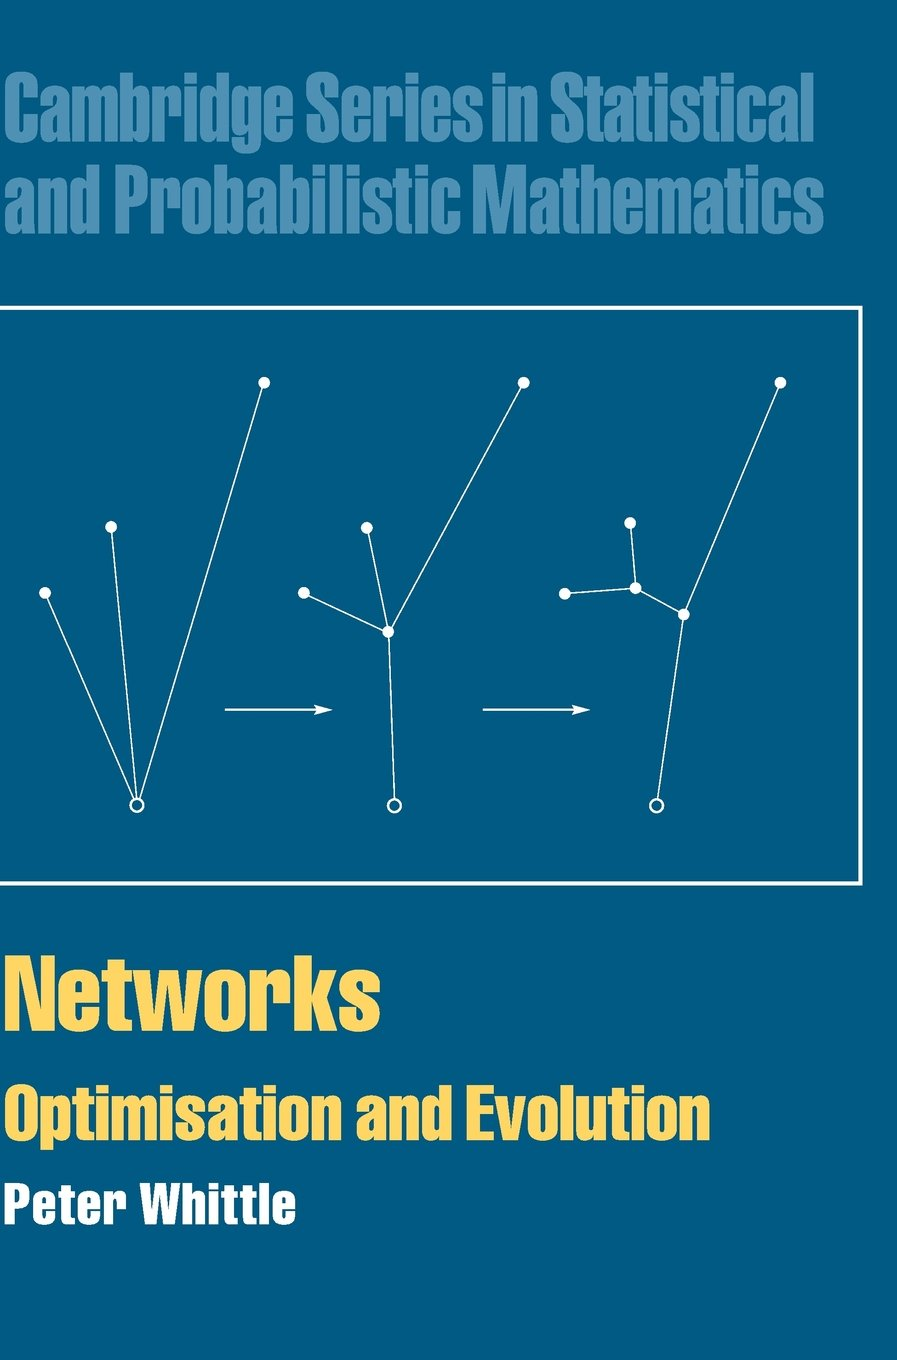 Networks  Optimisation And Evolution  Cambridge Series In Statistical And Probabilistic Mathematics Band 21